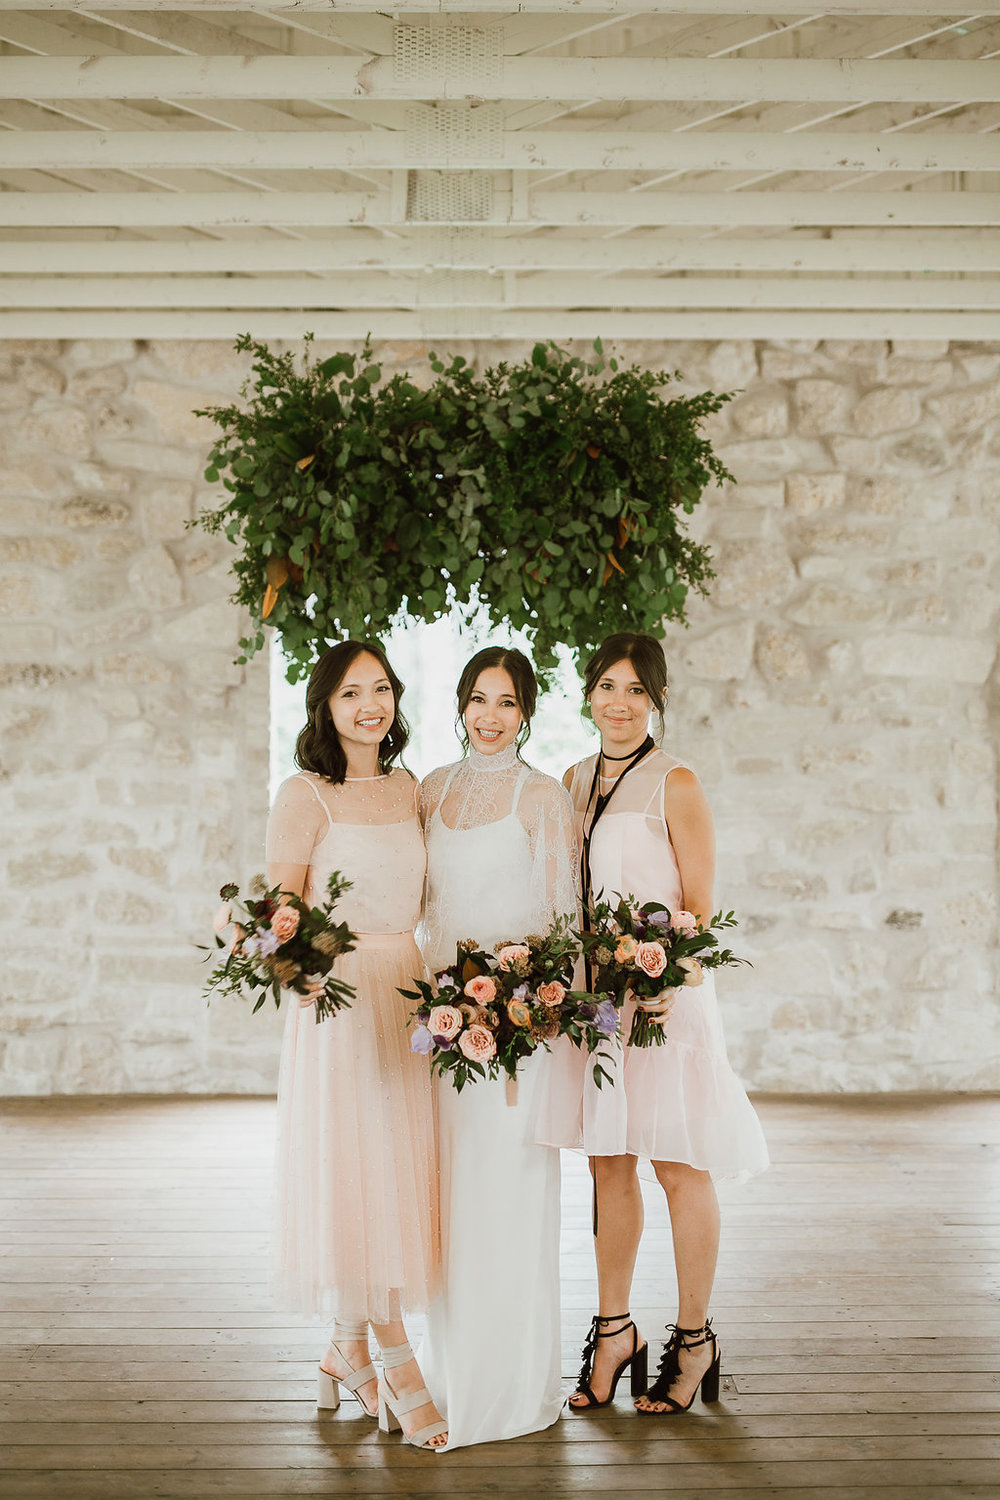 Blush and Mocha Wedding - Stylish Wedding Flowers